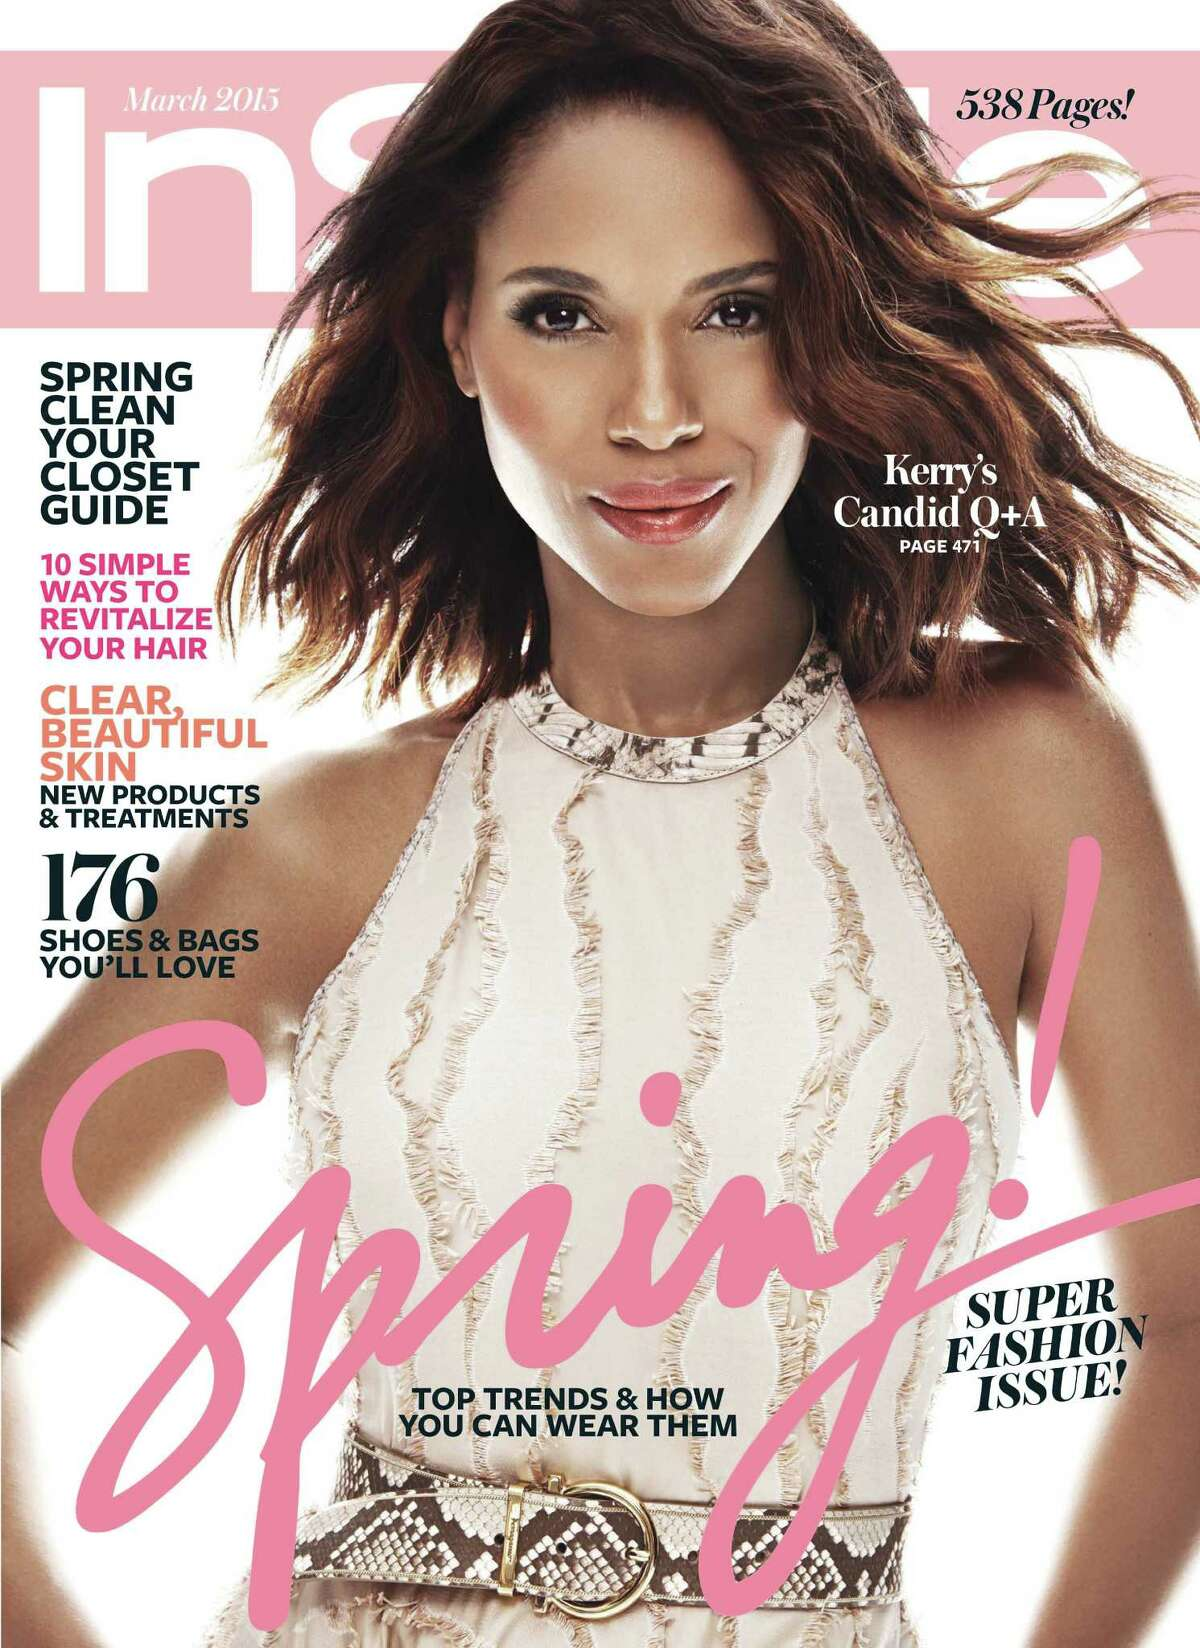 InStyle and fans fought over whether Kerry Washington's skin tone had been digitally altered.